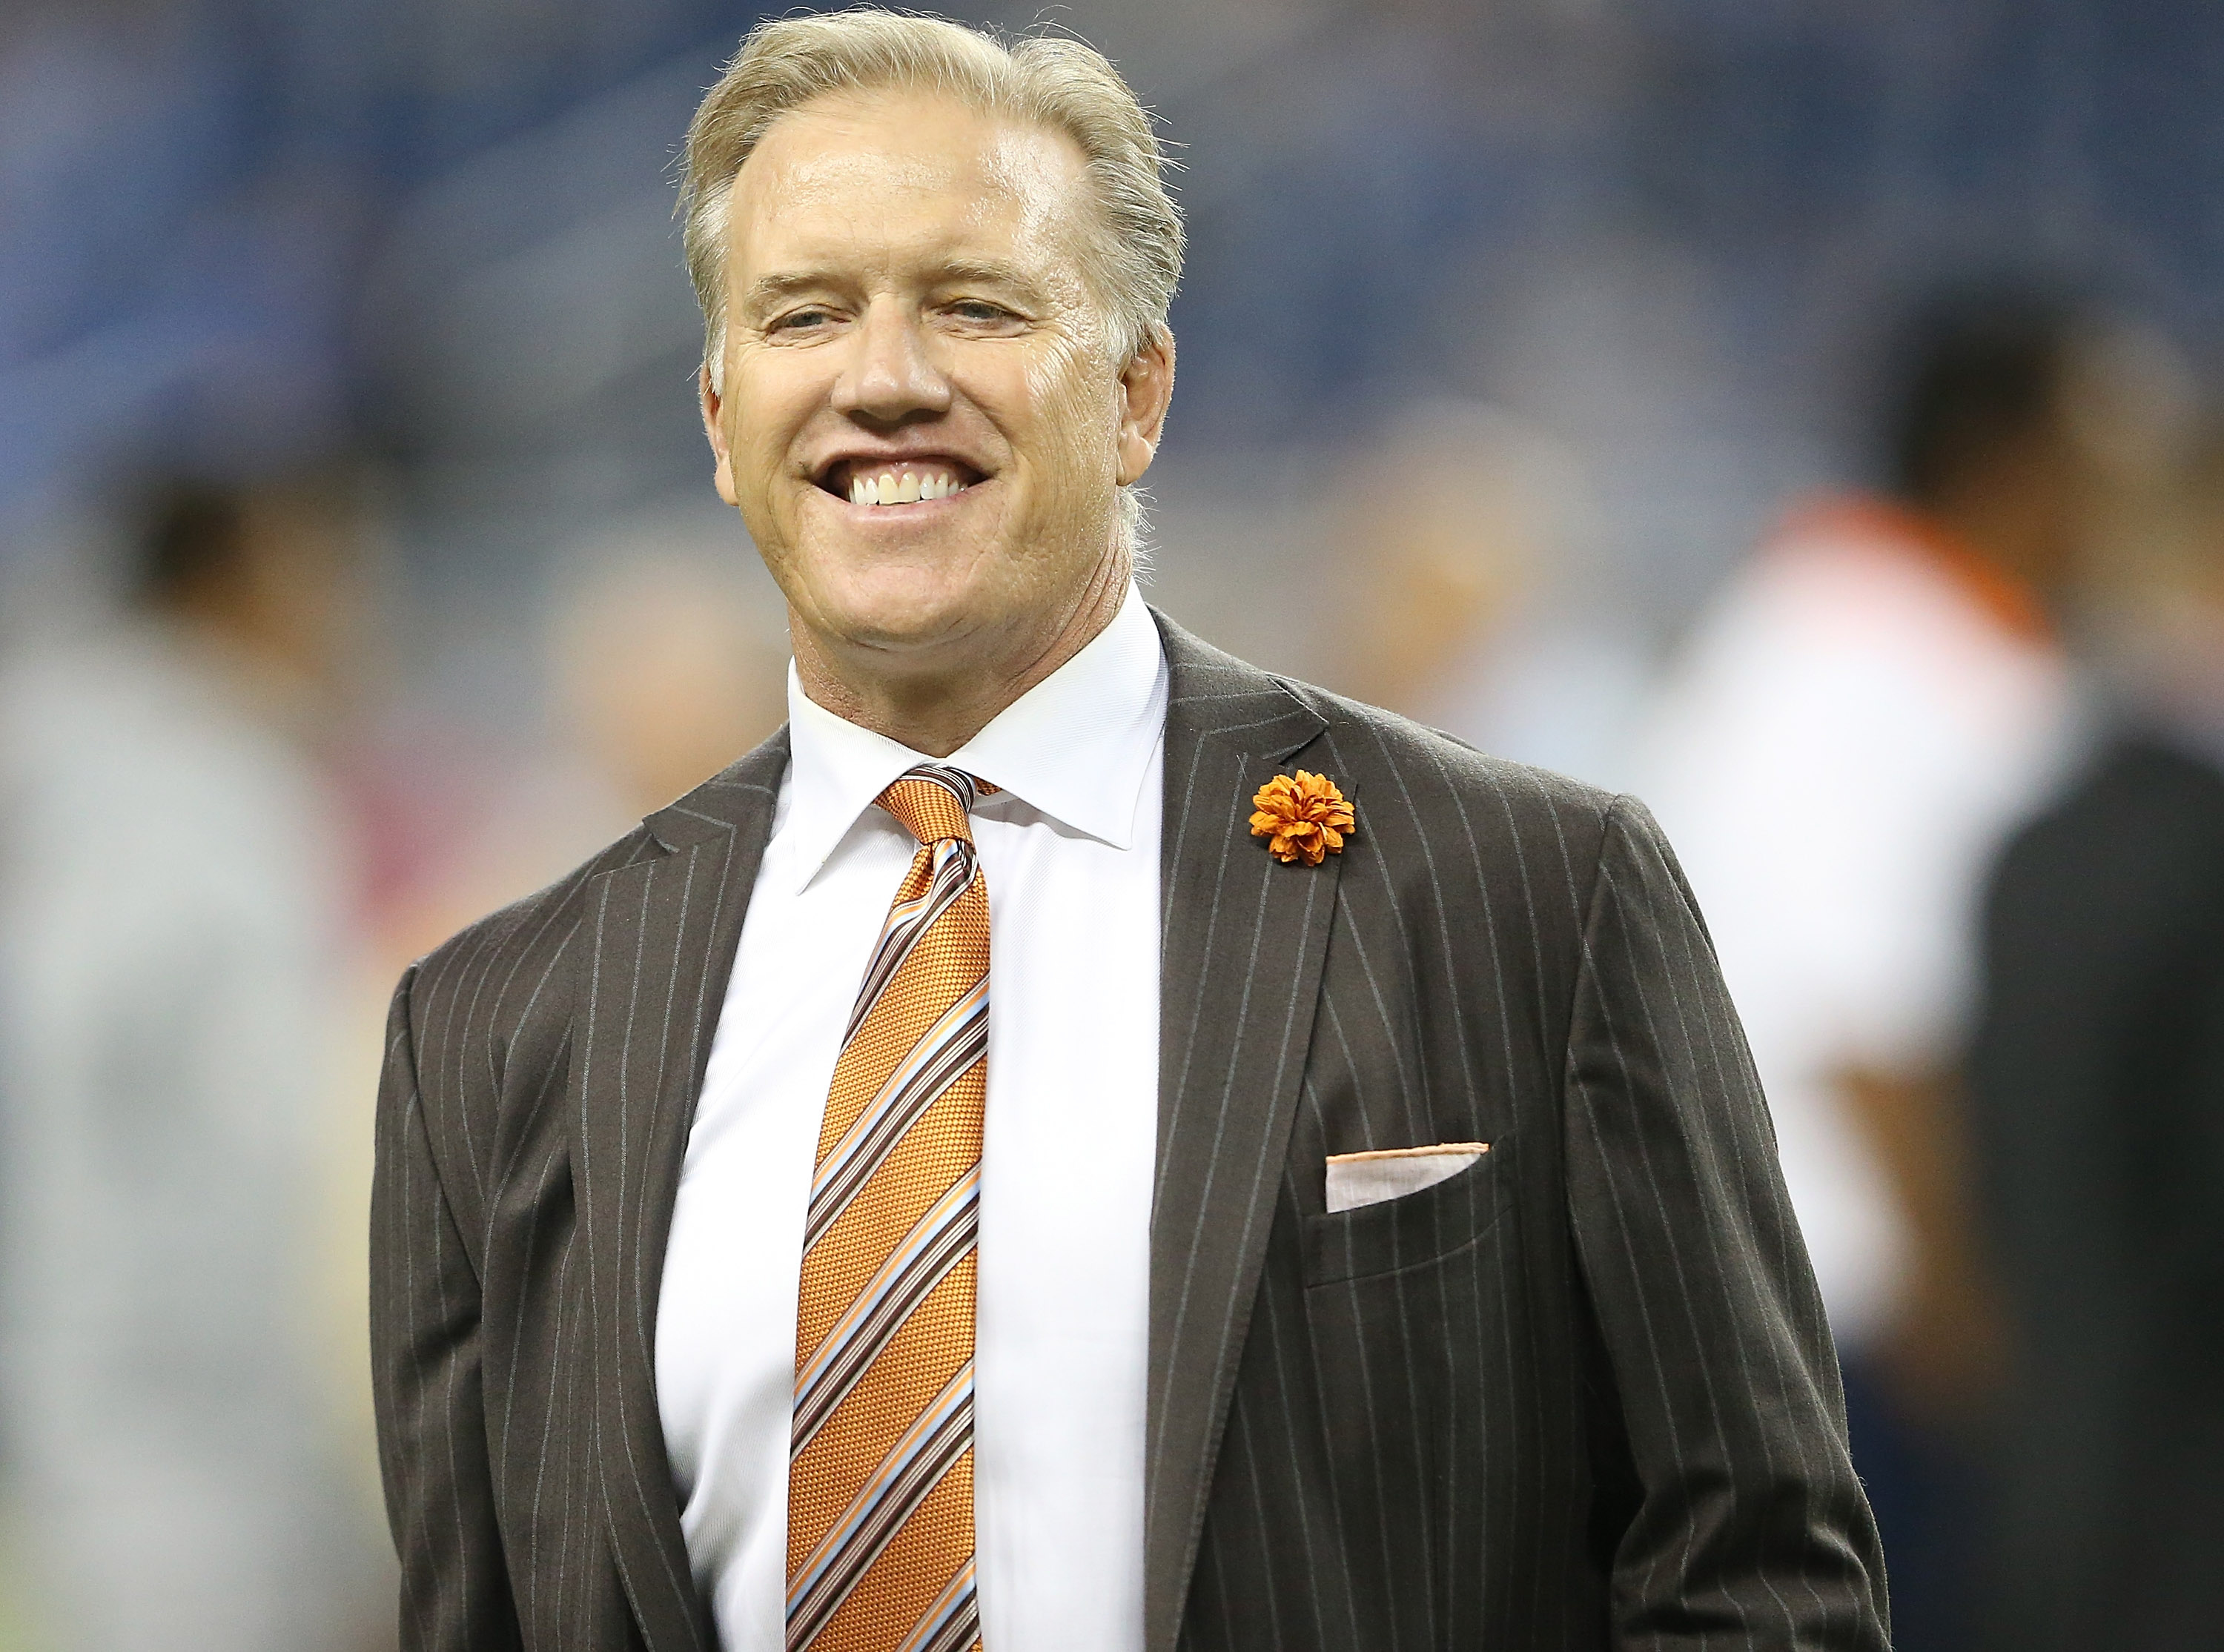 John Elway (Photo by Leon Halip/Getty Images)